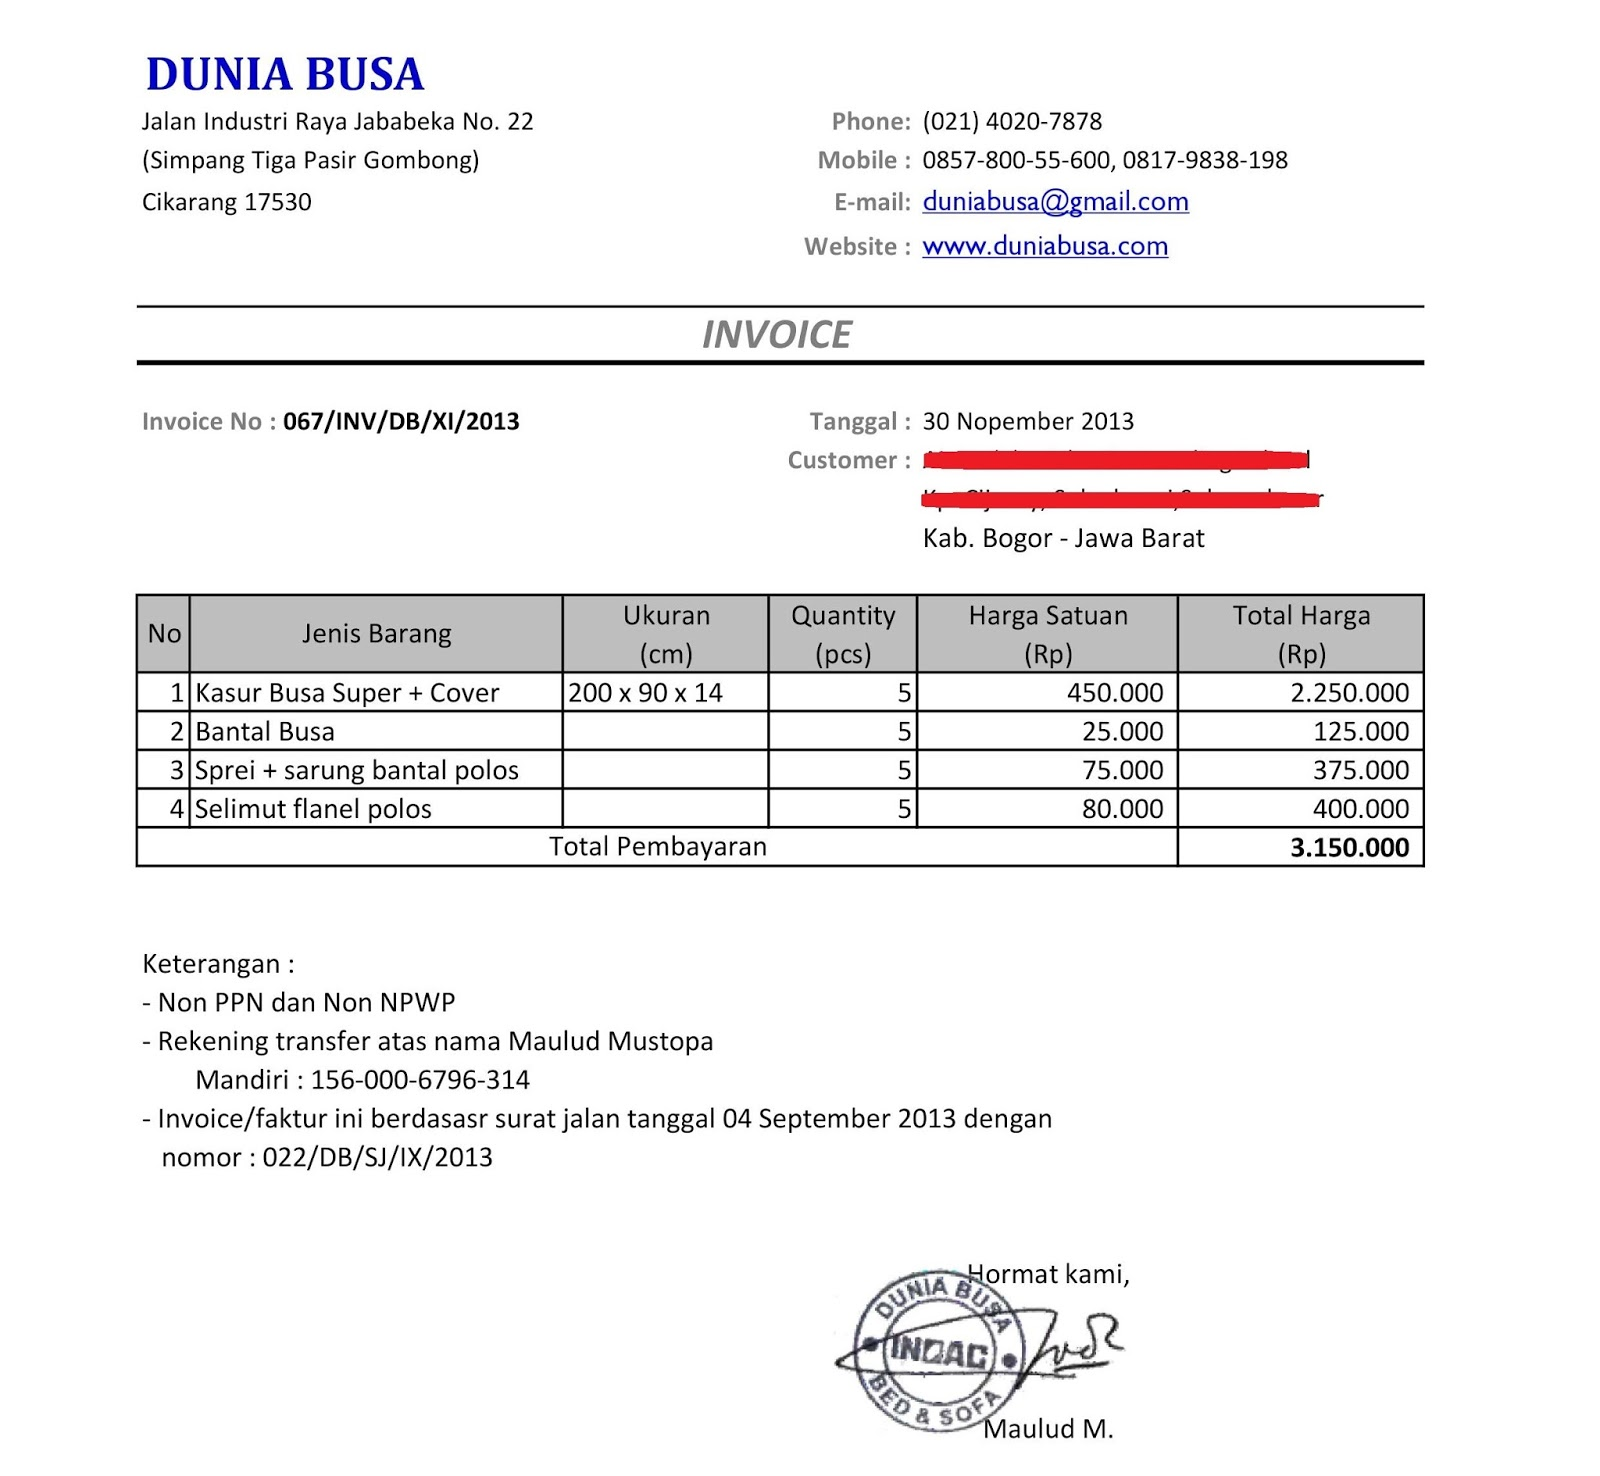 Centralasianshepherdus  Fascinating Free Invoice Online  Create Invoice Online  Invoice Template  With Hot Contoh Format Invoice Atau Surat Tagihan  Brankas Arsip  Free Invoice Online With Nice Sample Official Receipt Also Cash Advance Receipt In Addition Receipt Format In Excel And Payment Receipt Templates As Well As Rent Receipt Download Additionally Acknowledgement Receipt Meaning From Sklepco With Centralasianshepherdus  Hot Free Invoice Online  Create Invoice Online  Invoice Template  With Nice Contoh Format Invoice Atau Surat Tagihan  Brankas Arsip  Free Invoice Online And Fascinating Sample Official Receipt Also Cash Advance Receipt In Addition Receipt Format In Excel From Sklepco